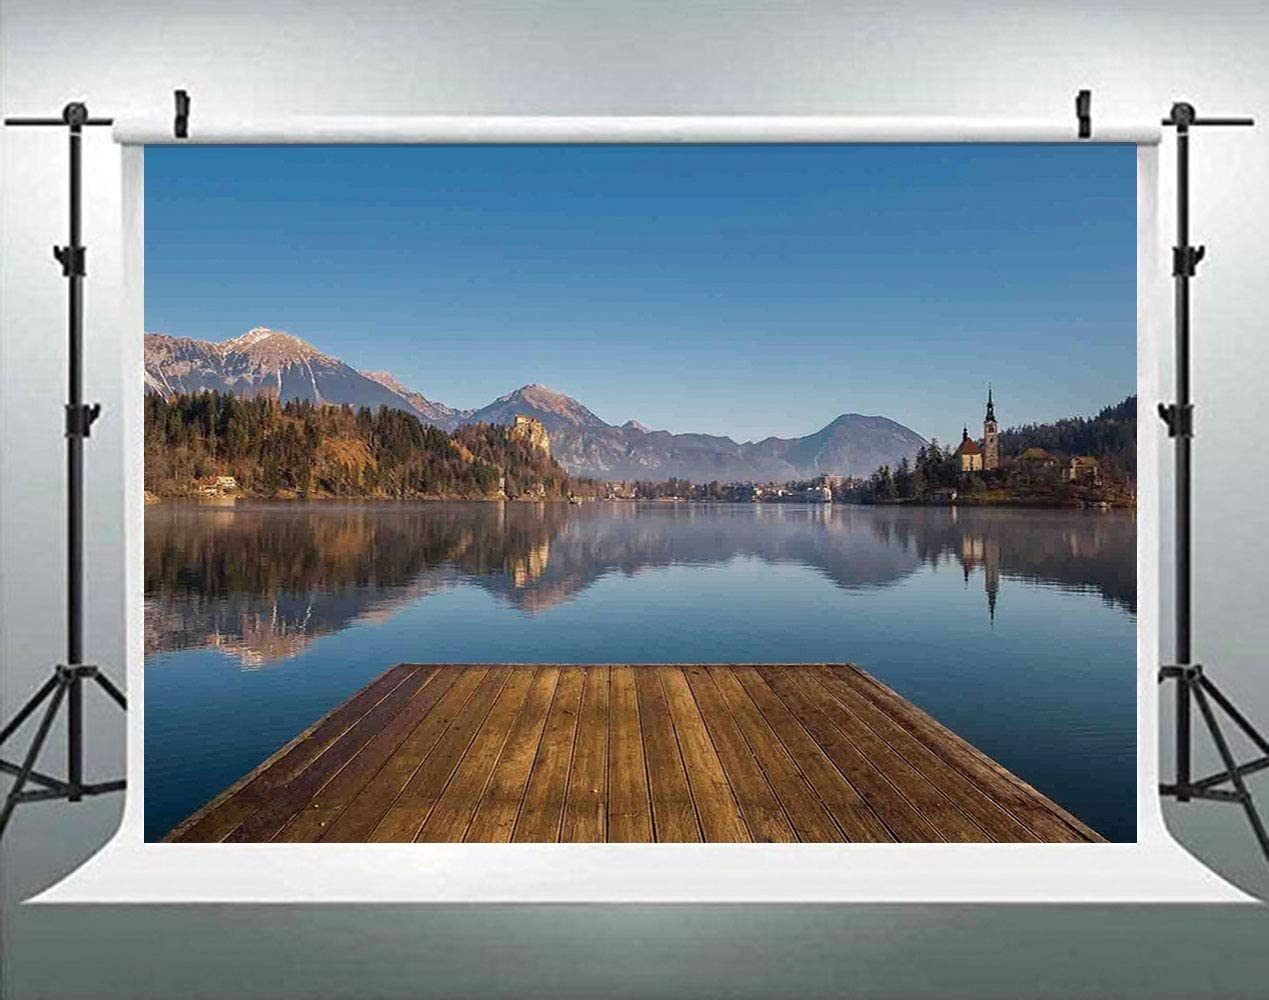 ALUONI 5x3ft Art,Scenery of A Tranquil Sunset Over The Lake and A Long Deck in Photography Backdrop Photo Backdrops Portrait Background Studio Props AM003981